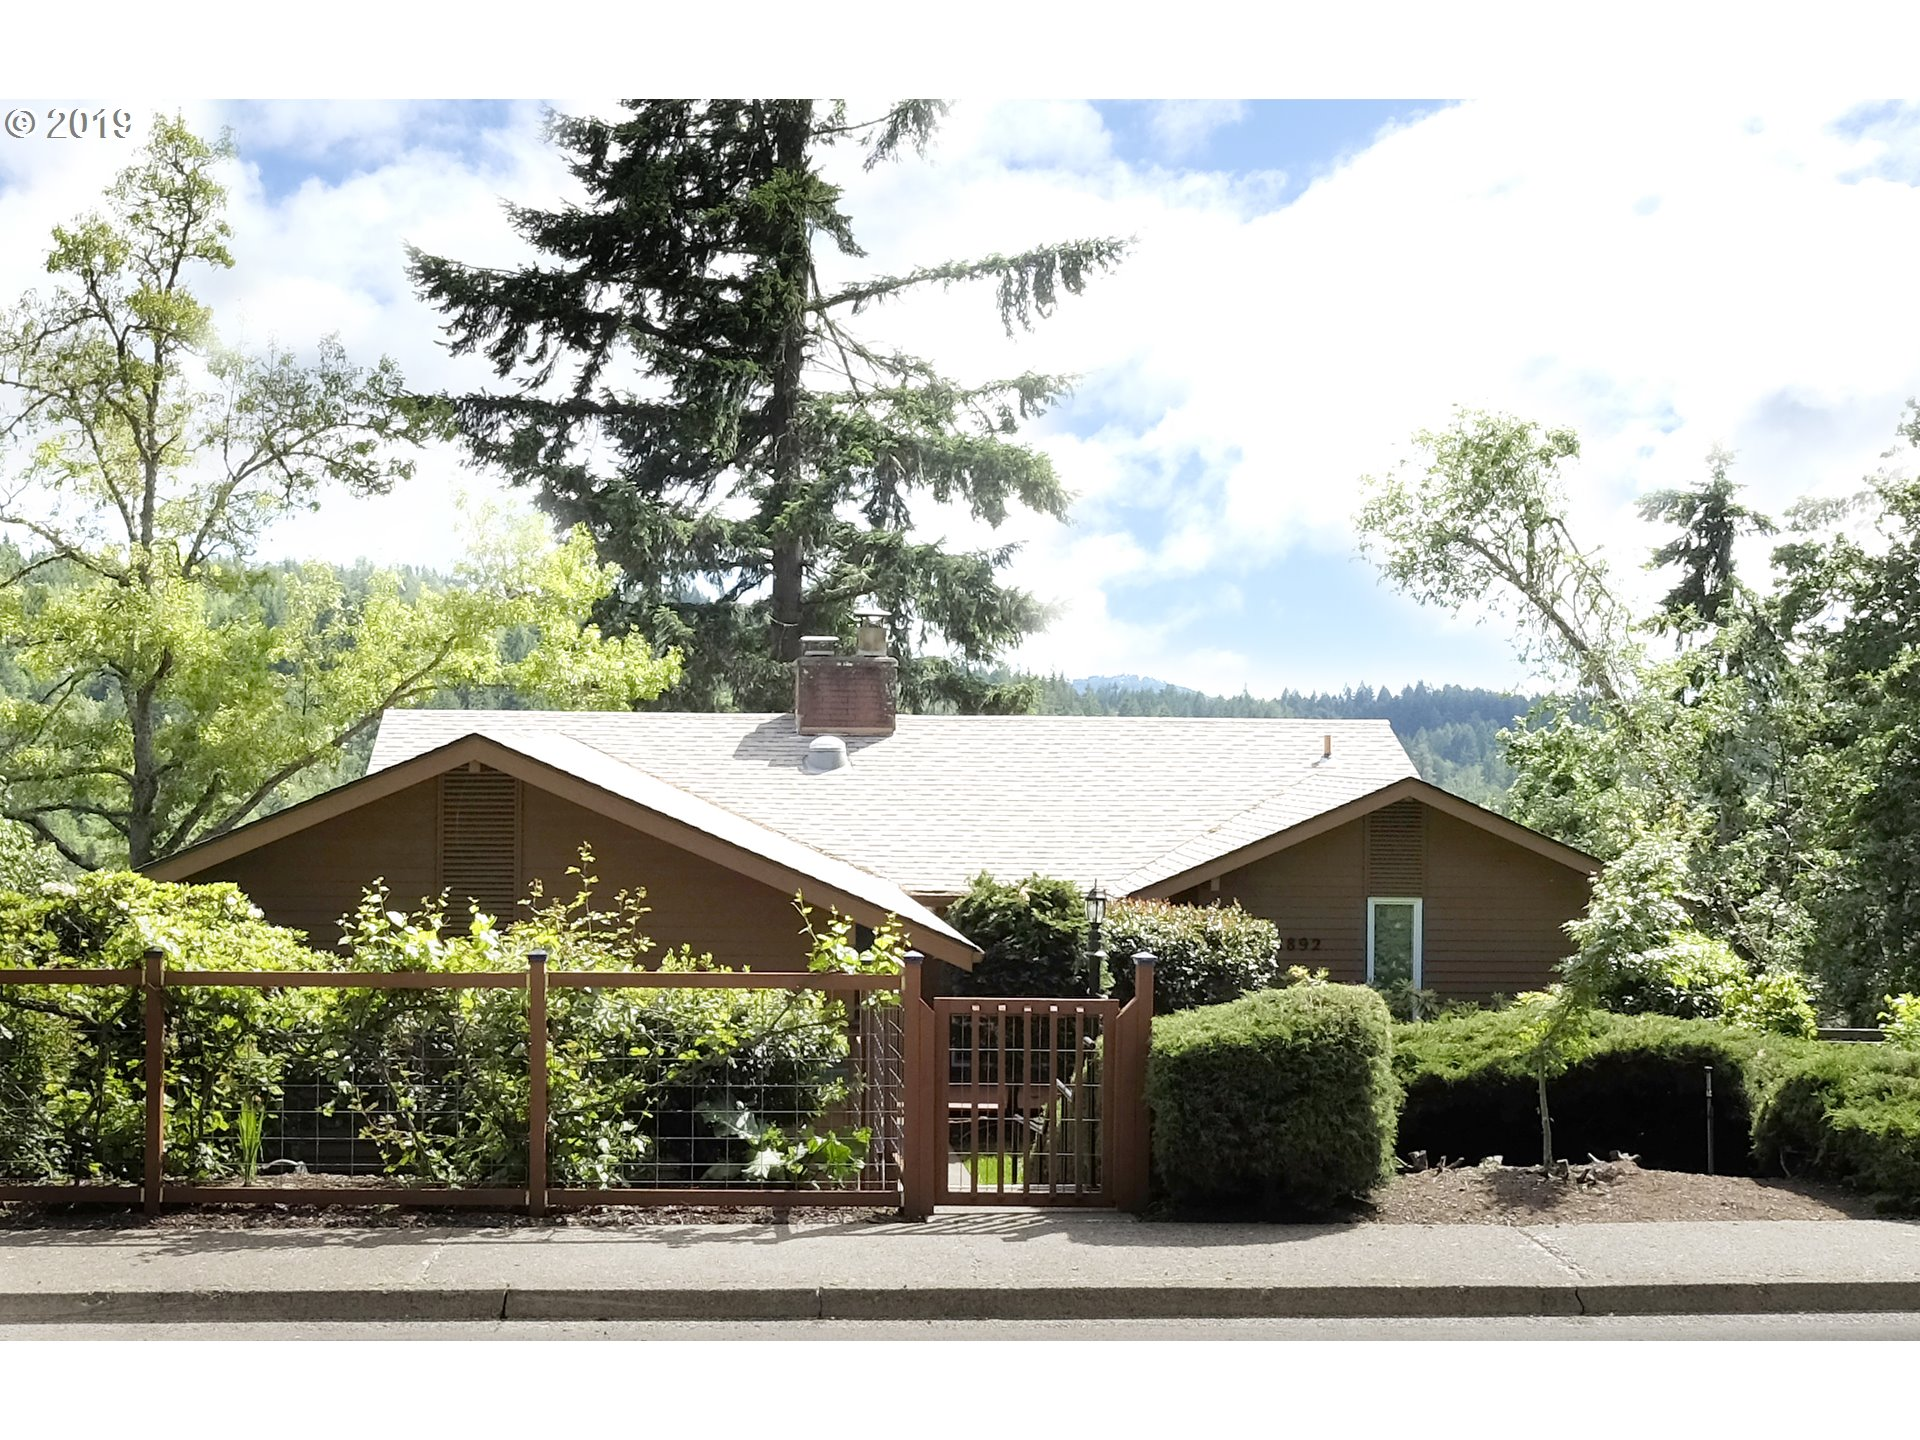 1892 W 34TH AVE, Eugene OR 97405